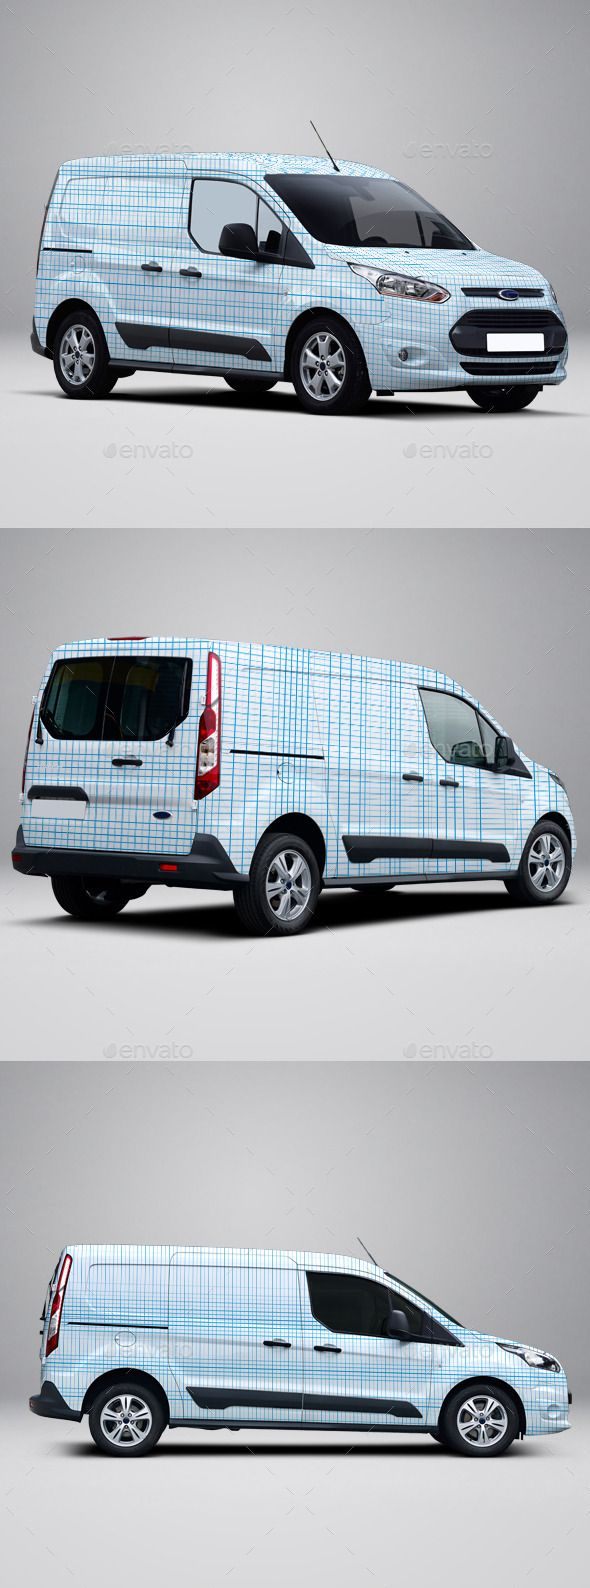 2014 Ford Transit Connect Wrap Mockup Vehicle Wraps Print Ford